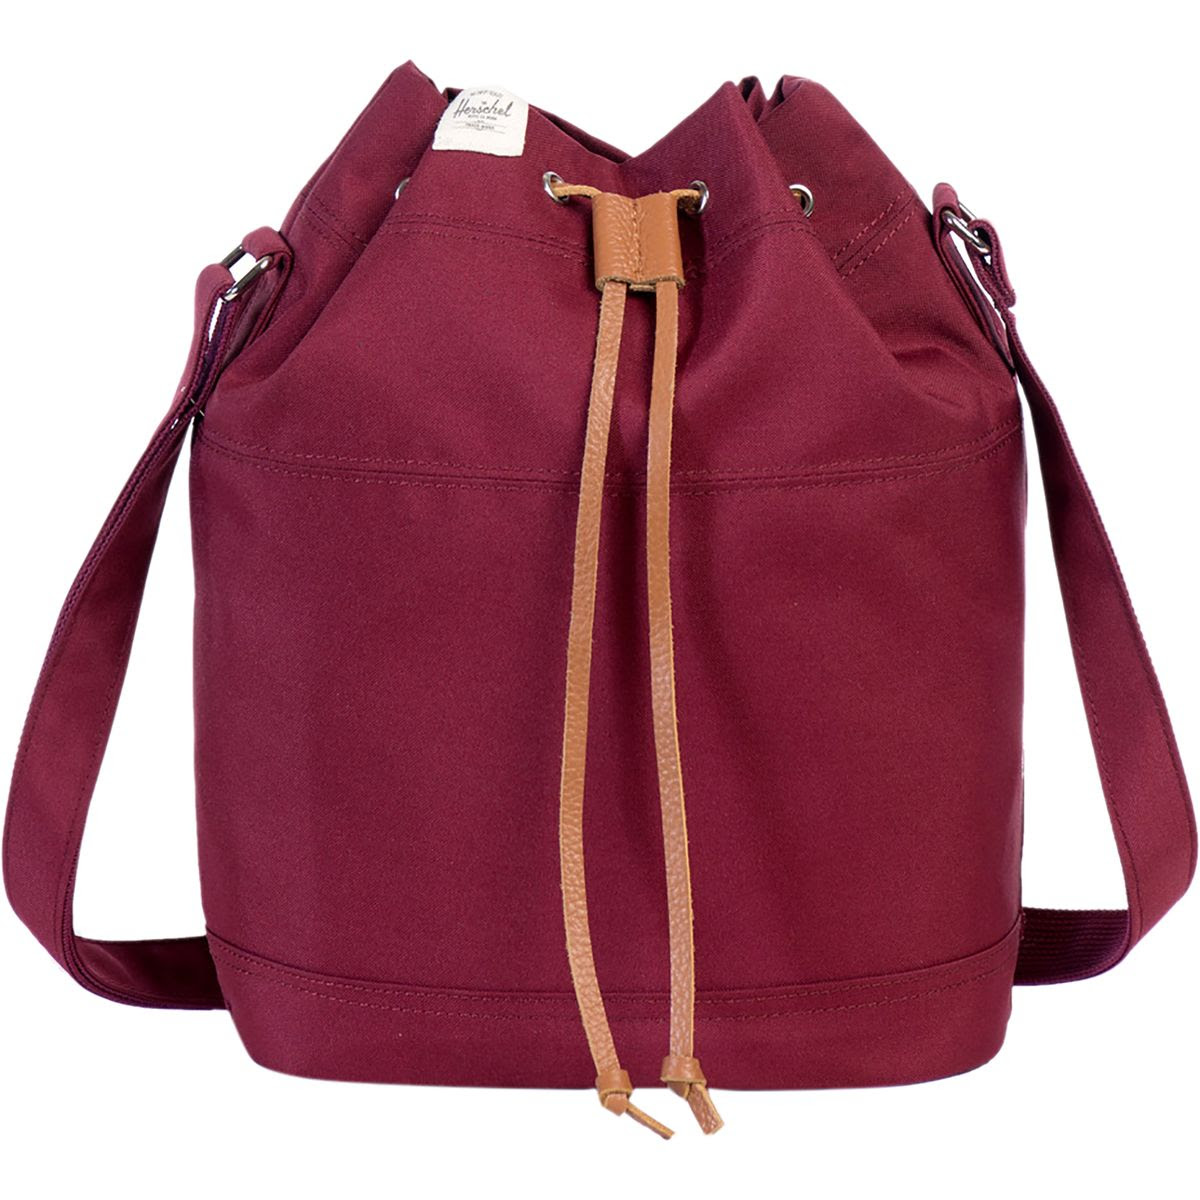 Herschel Supply Carlow Crossbody Bag - Women's Windsor Wine, One Size